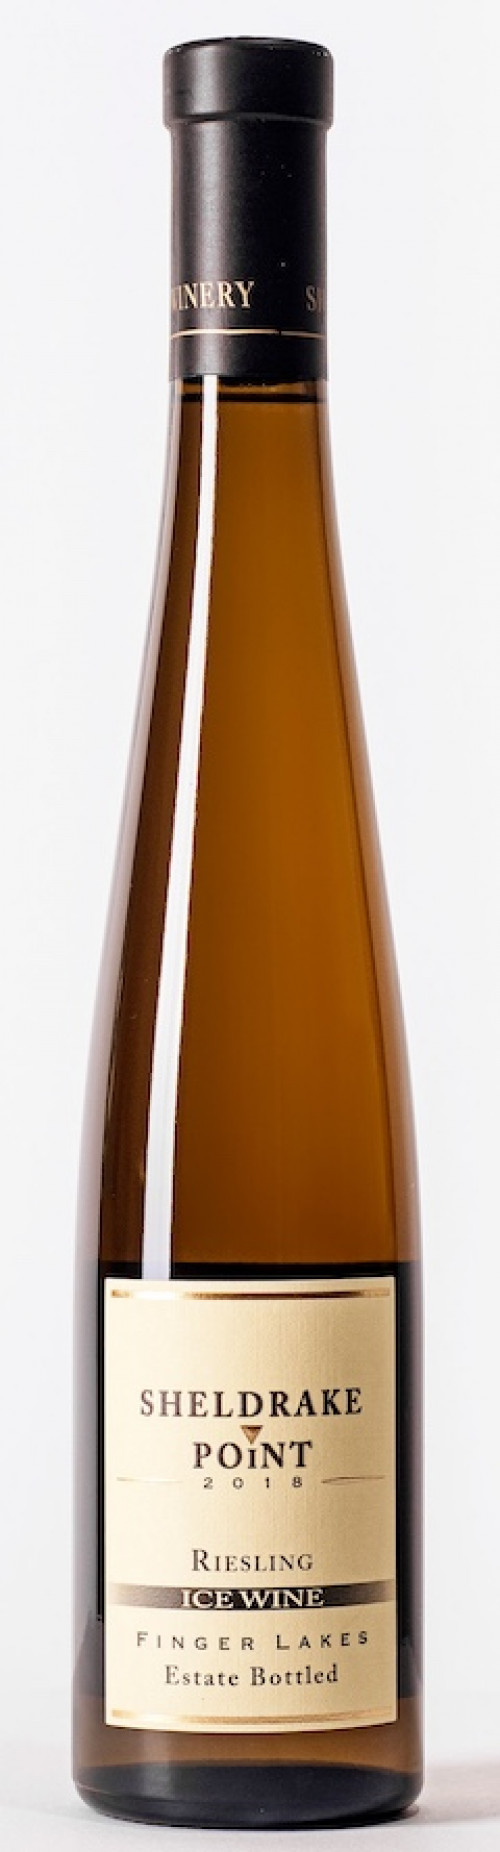 2016 Sheldrake Riesling Ice Wine 375ml